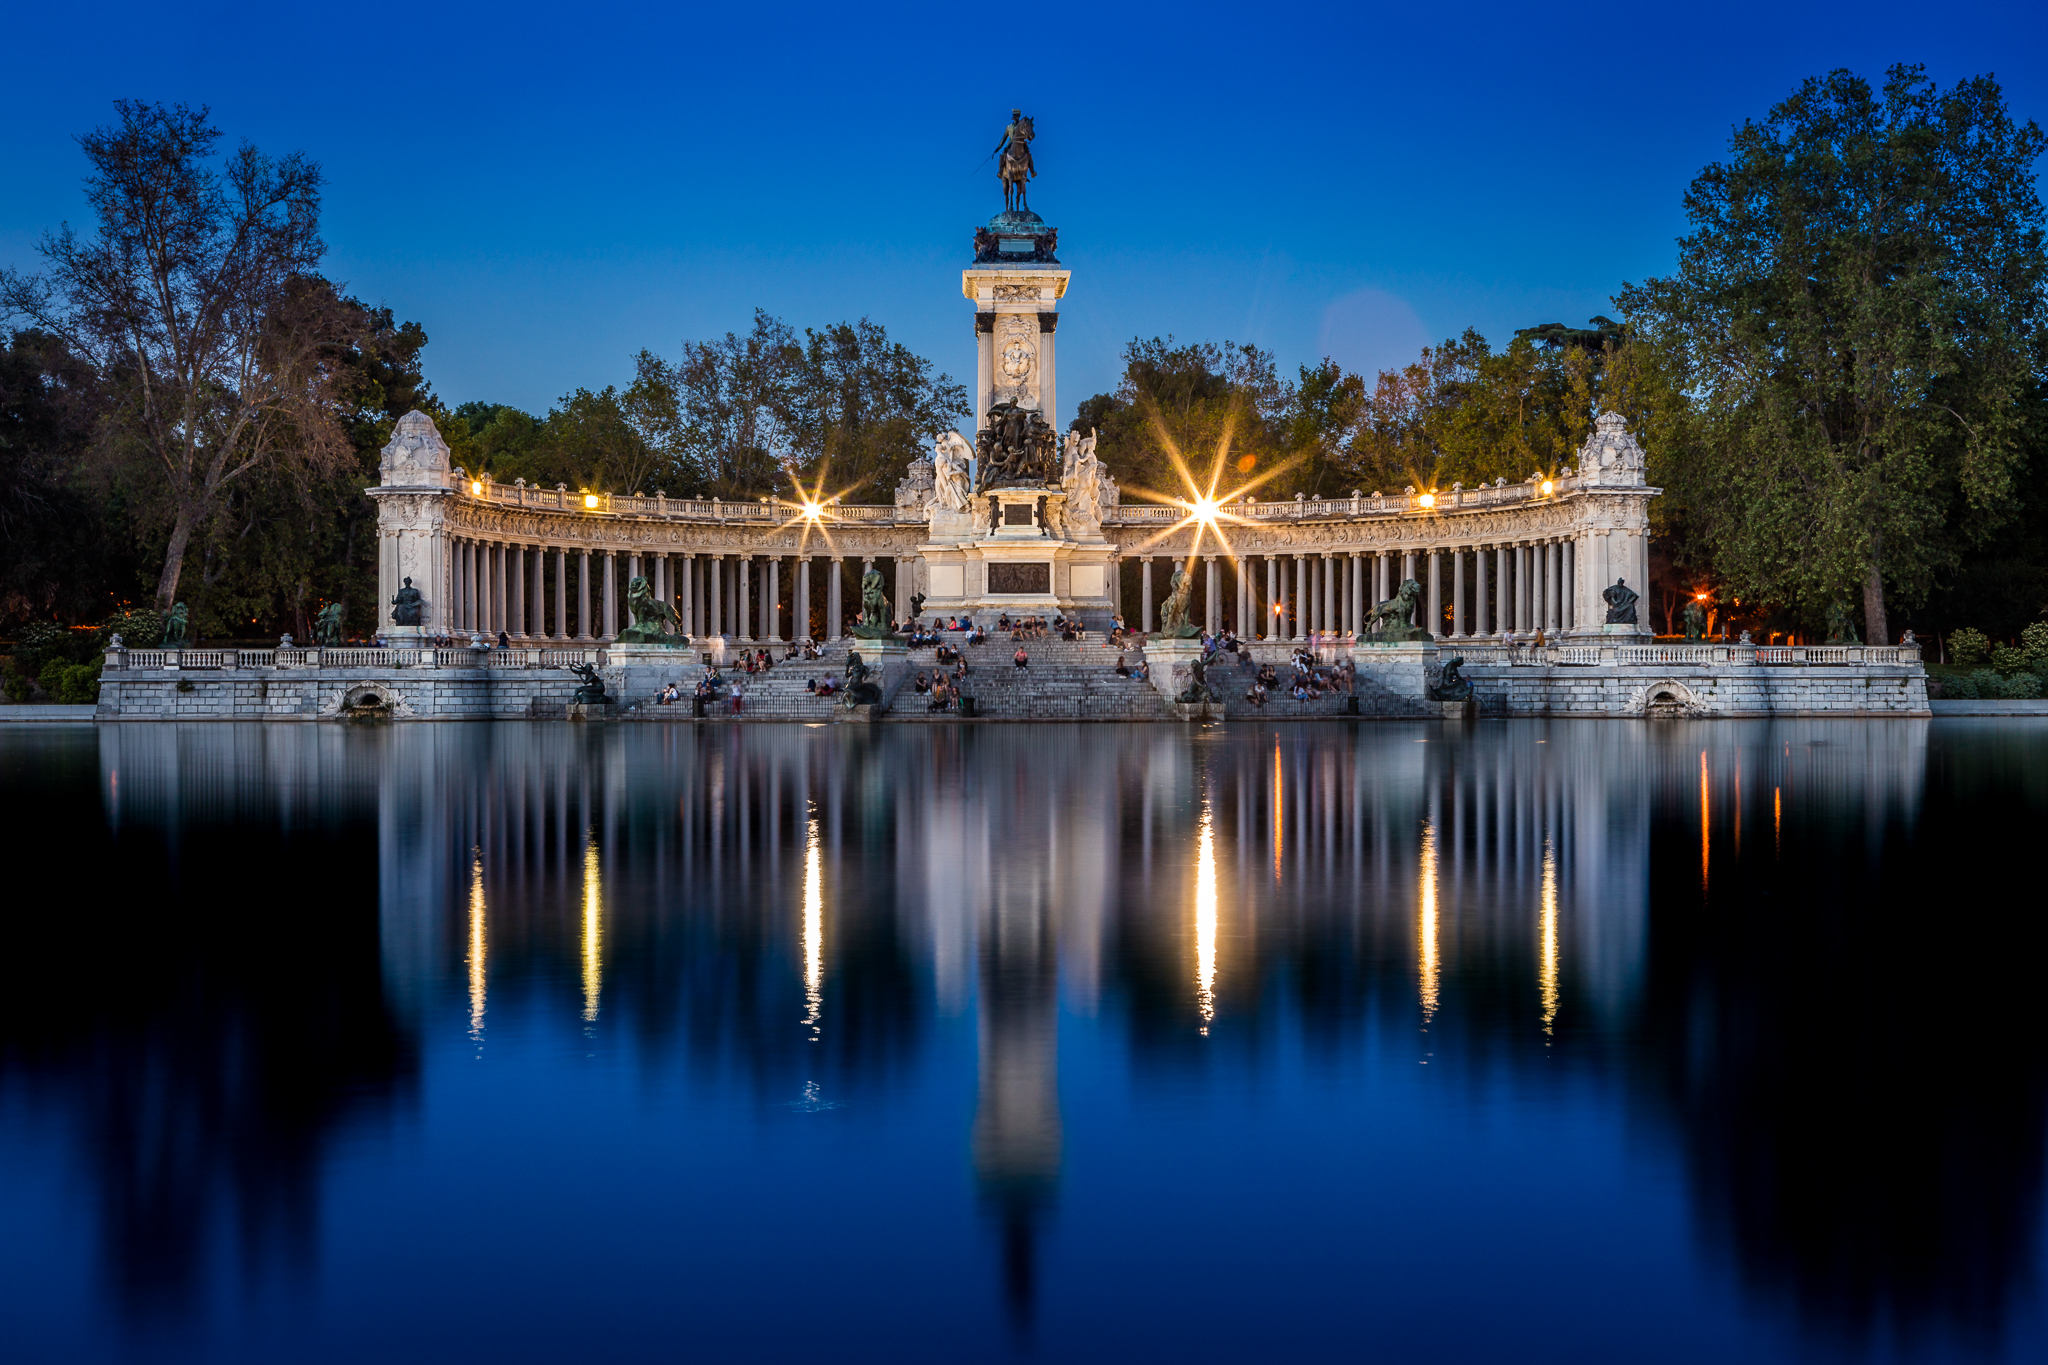 Monumento Alfonso XII, Madrid, Spain